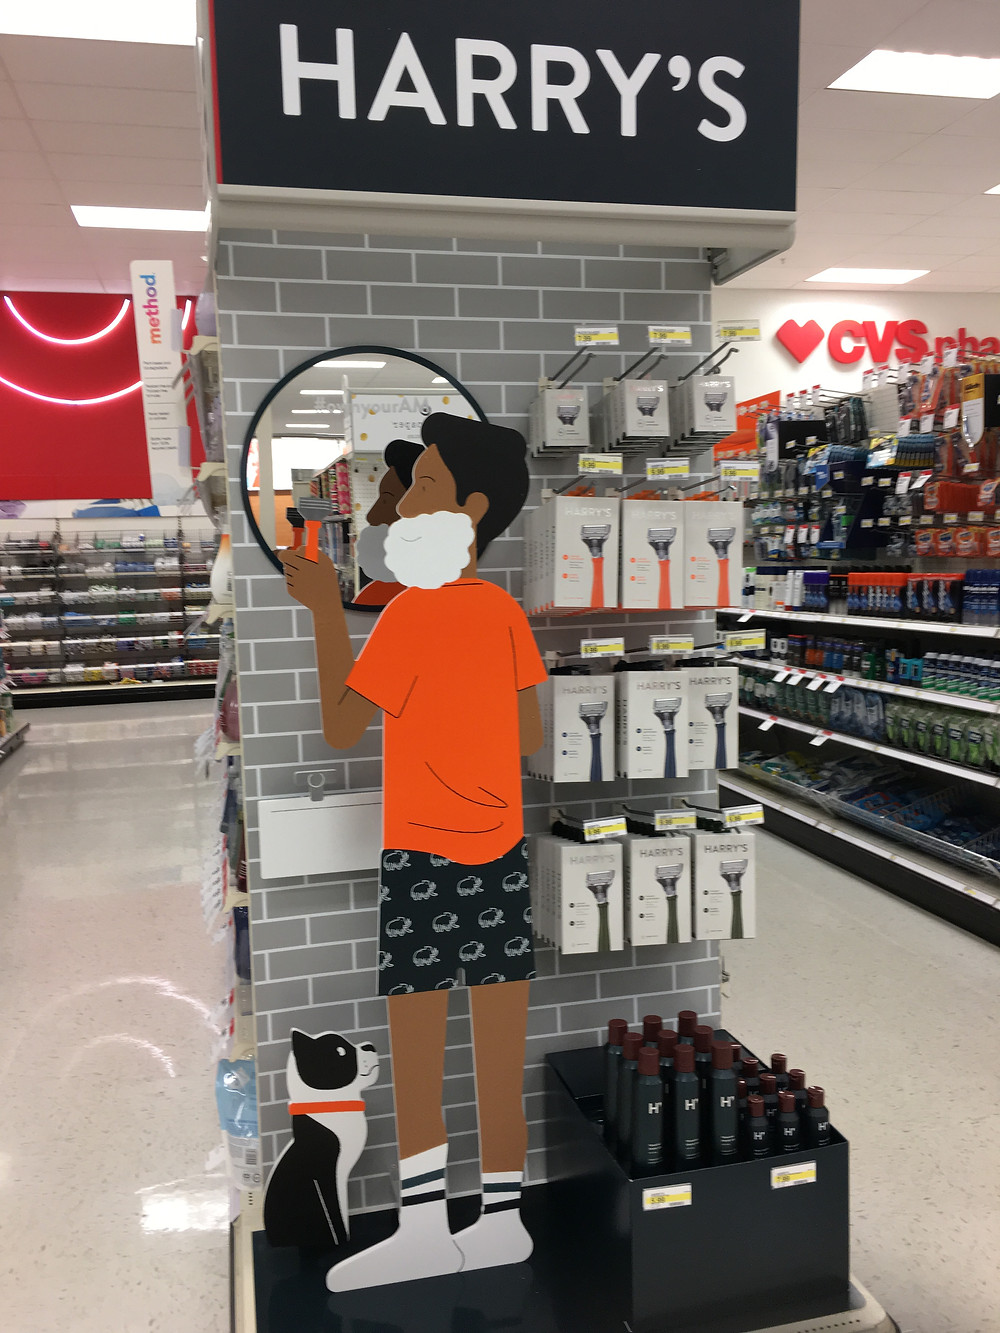 3-D Product Display of man shaving in mirror